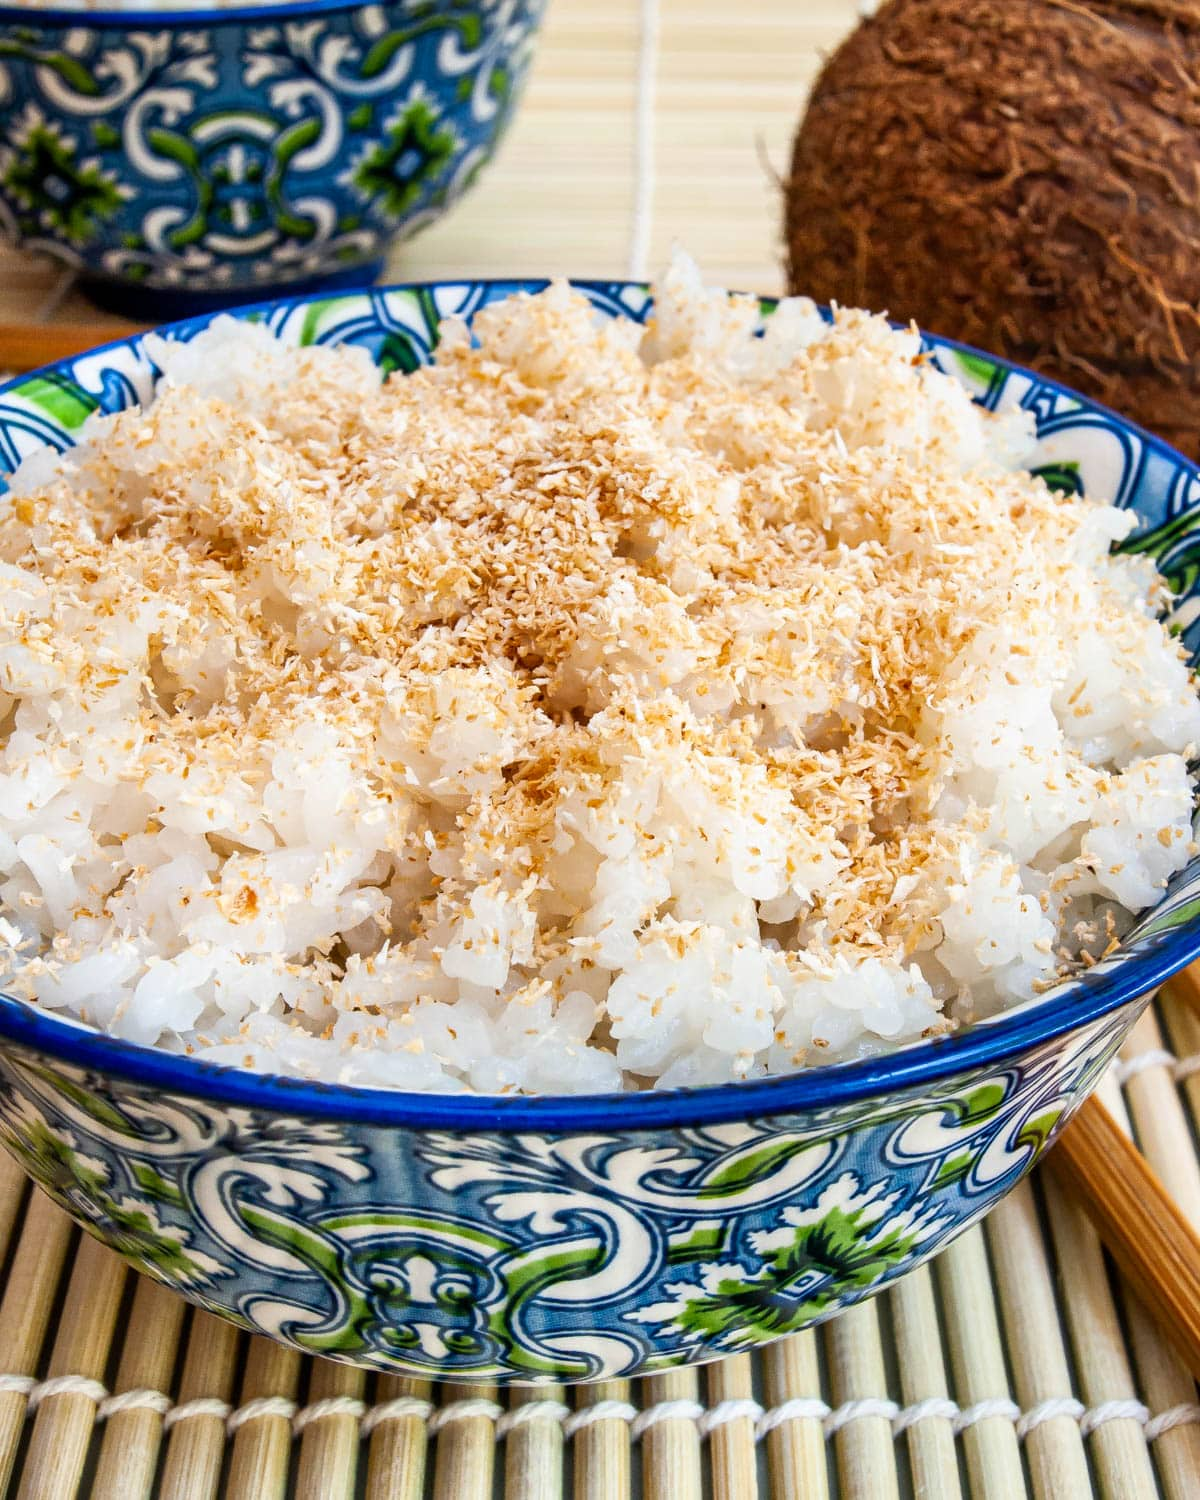 coconut rice in a blue bowl garnished with toasted coconut